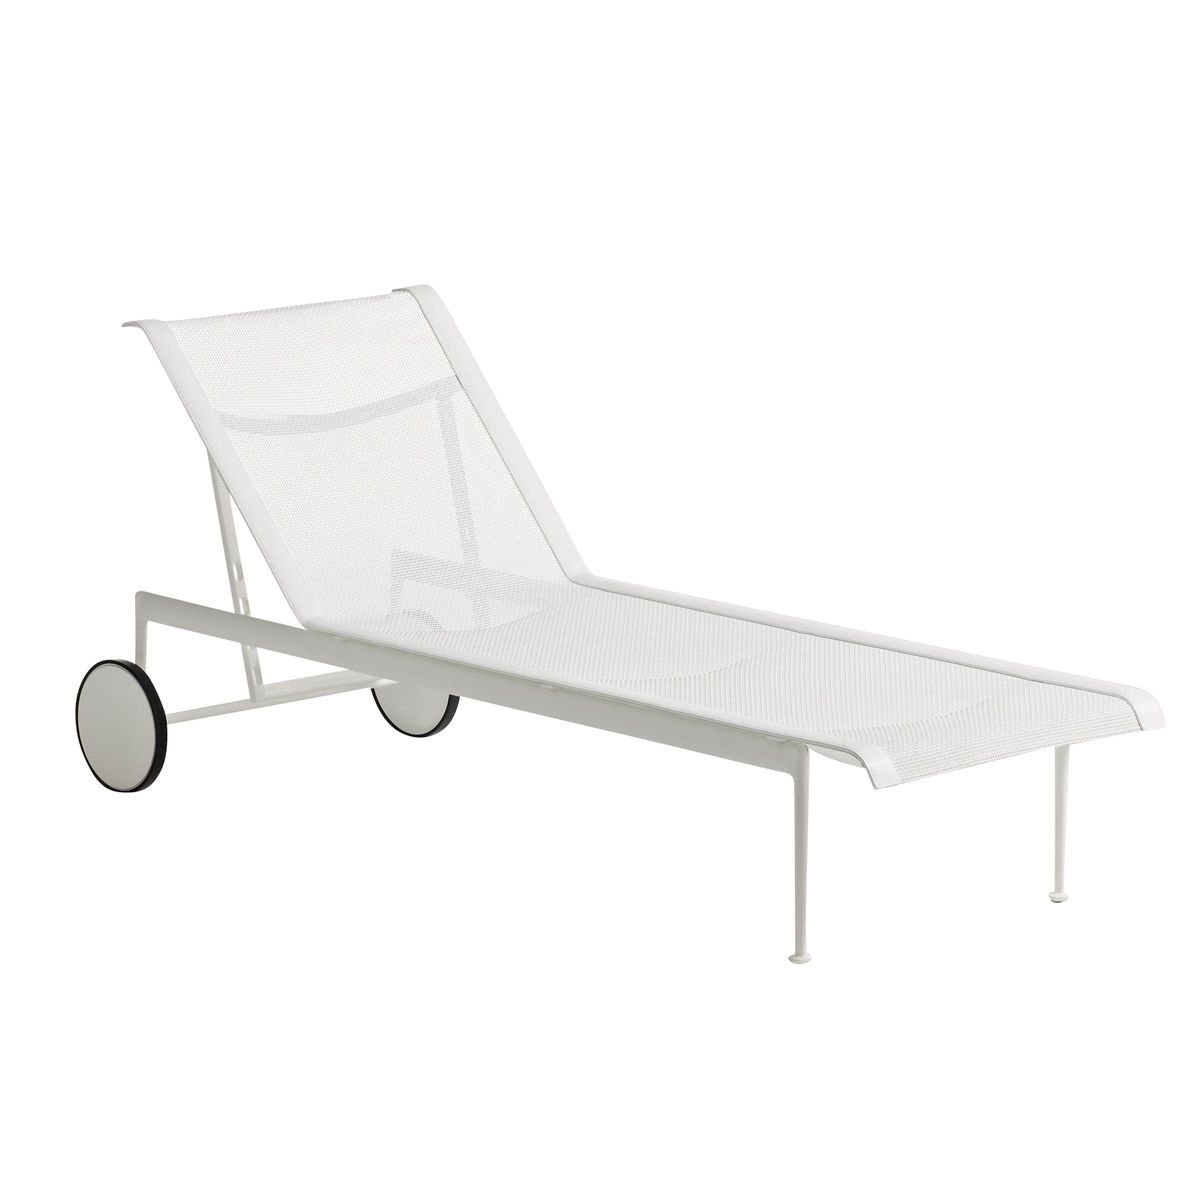 Knoll International   1966 42 Richard Schultz Sun Lounger    White/adjustable ...